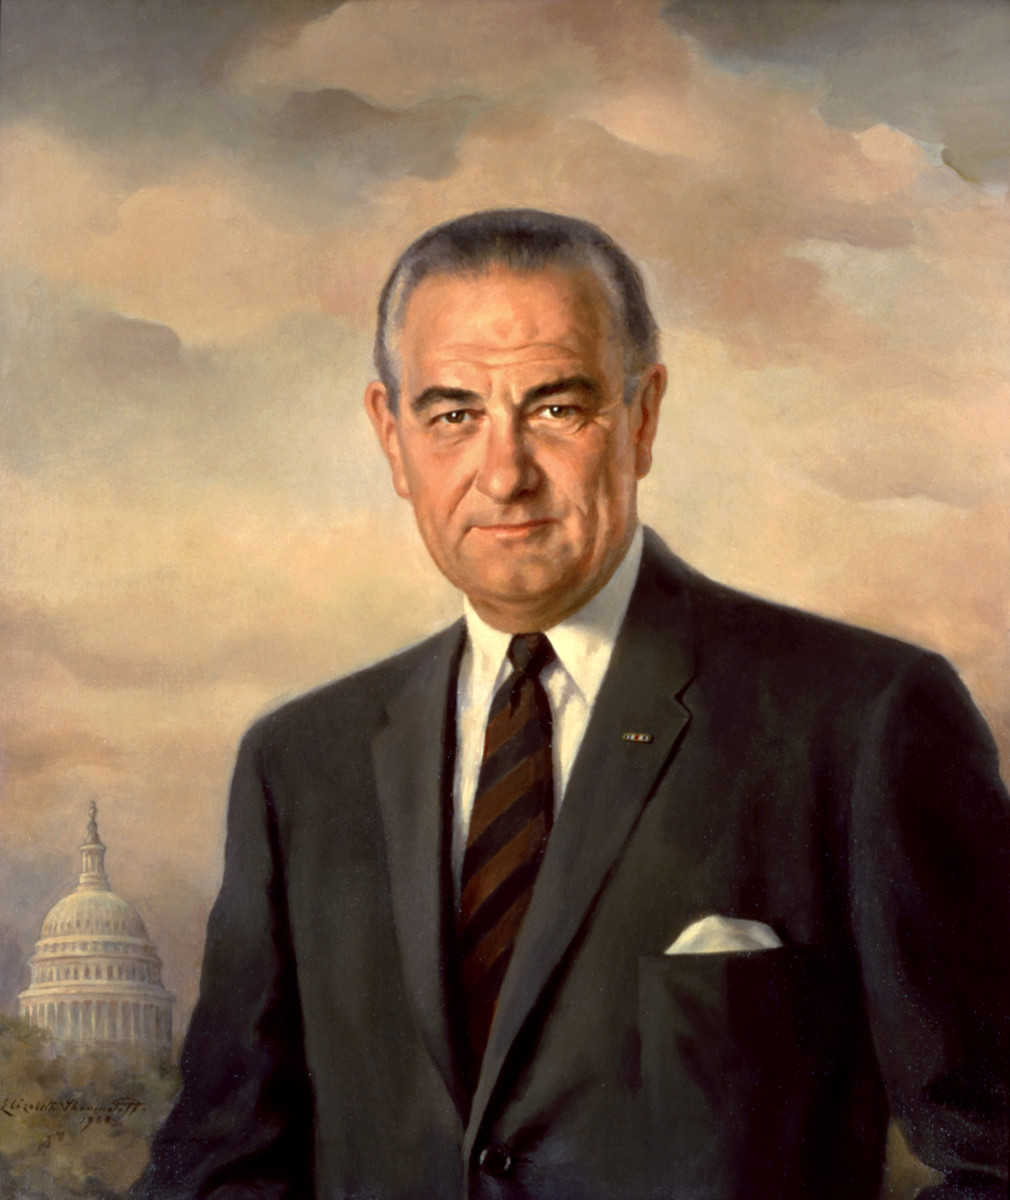 Lyndon B. Johnson: 36th President: In Office During the Vietnam War